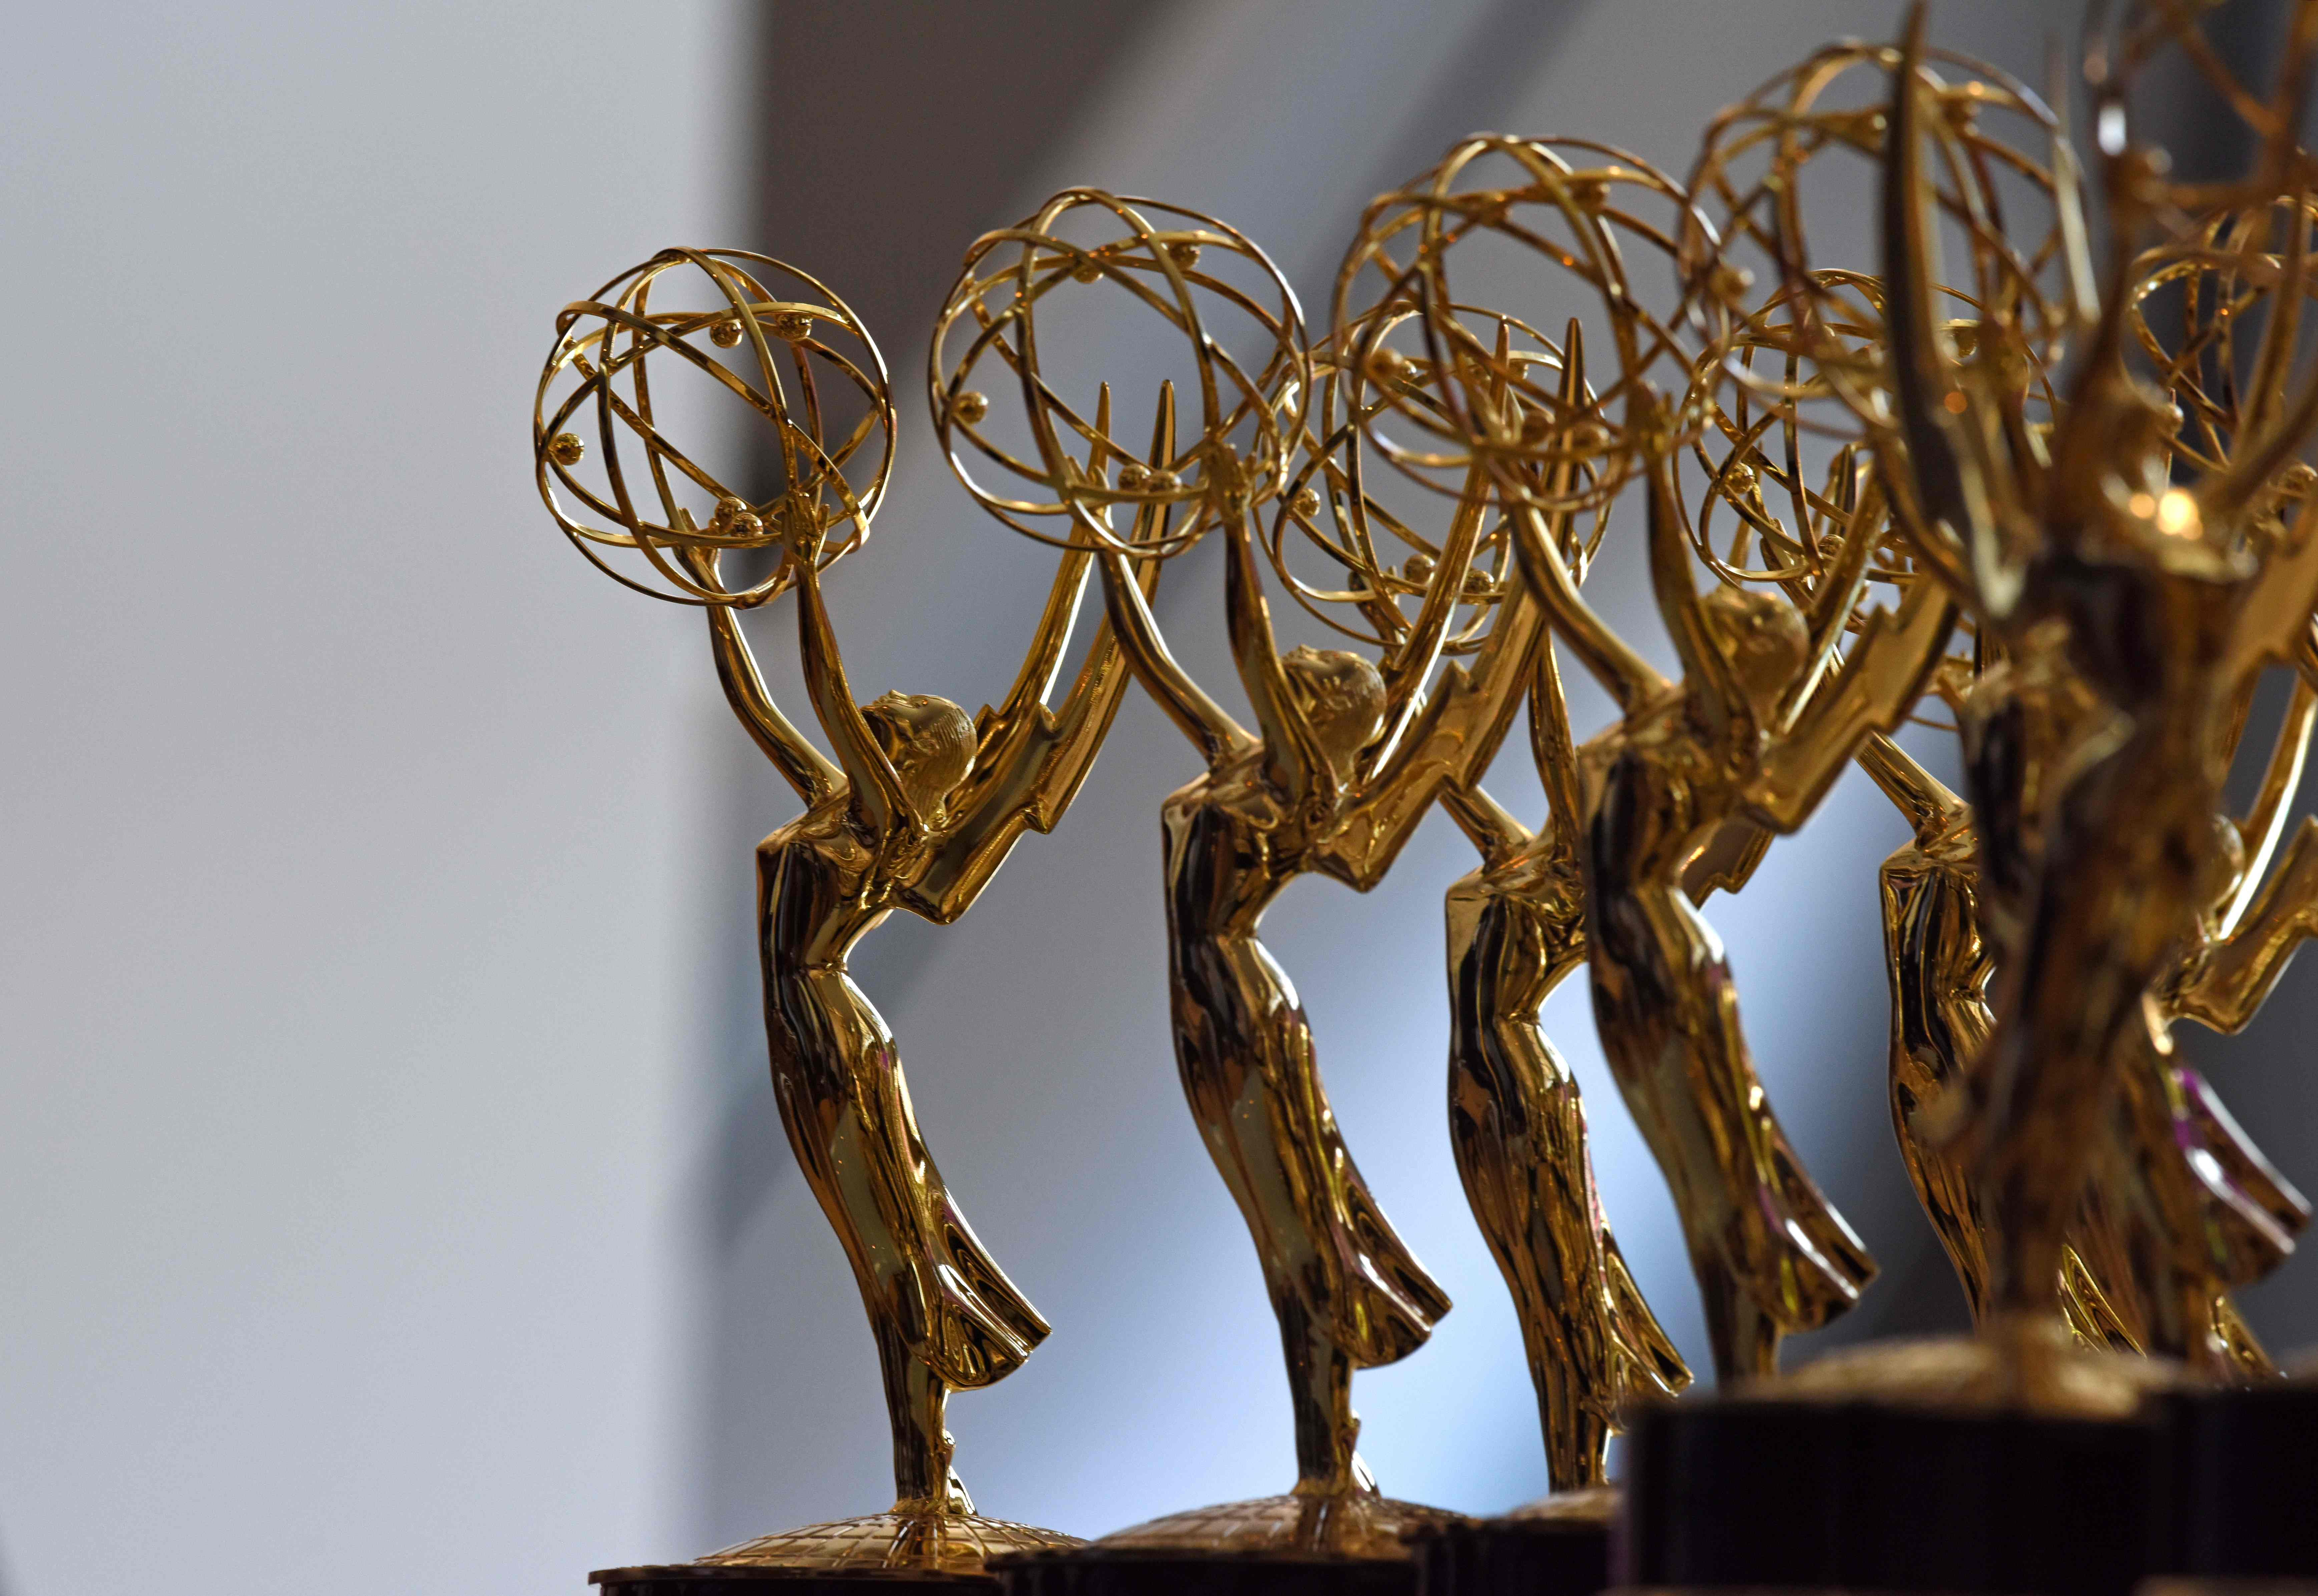 Emmy Nominations 2020 Faqs About The Awards Amid Covid 19